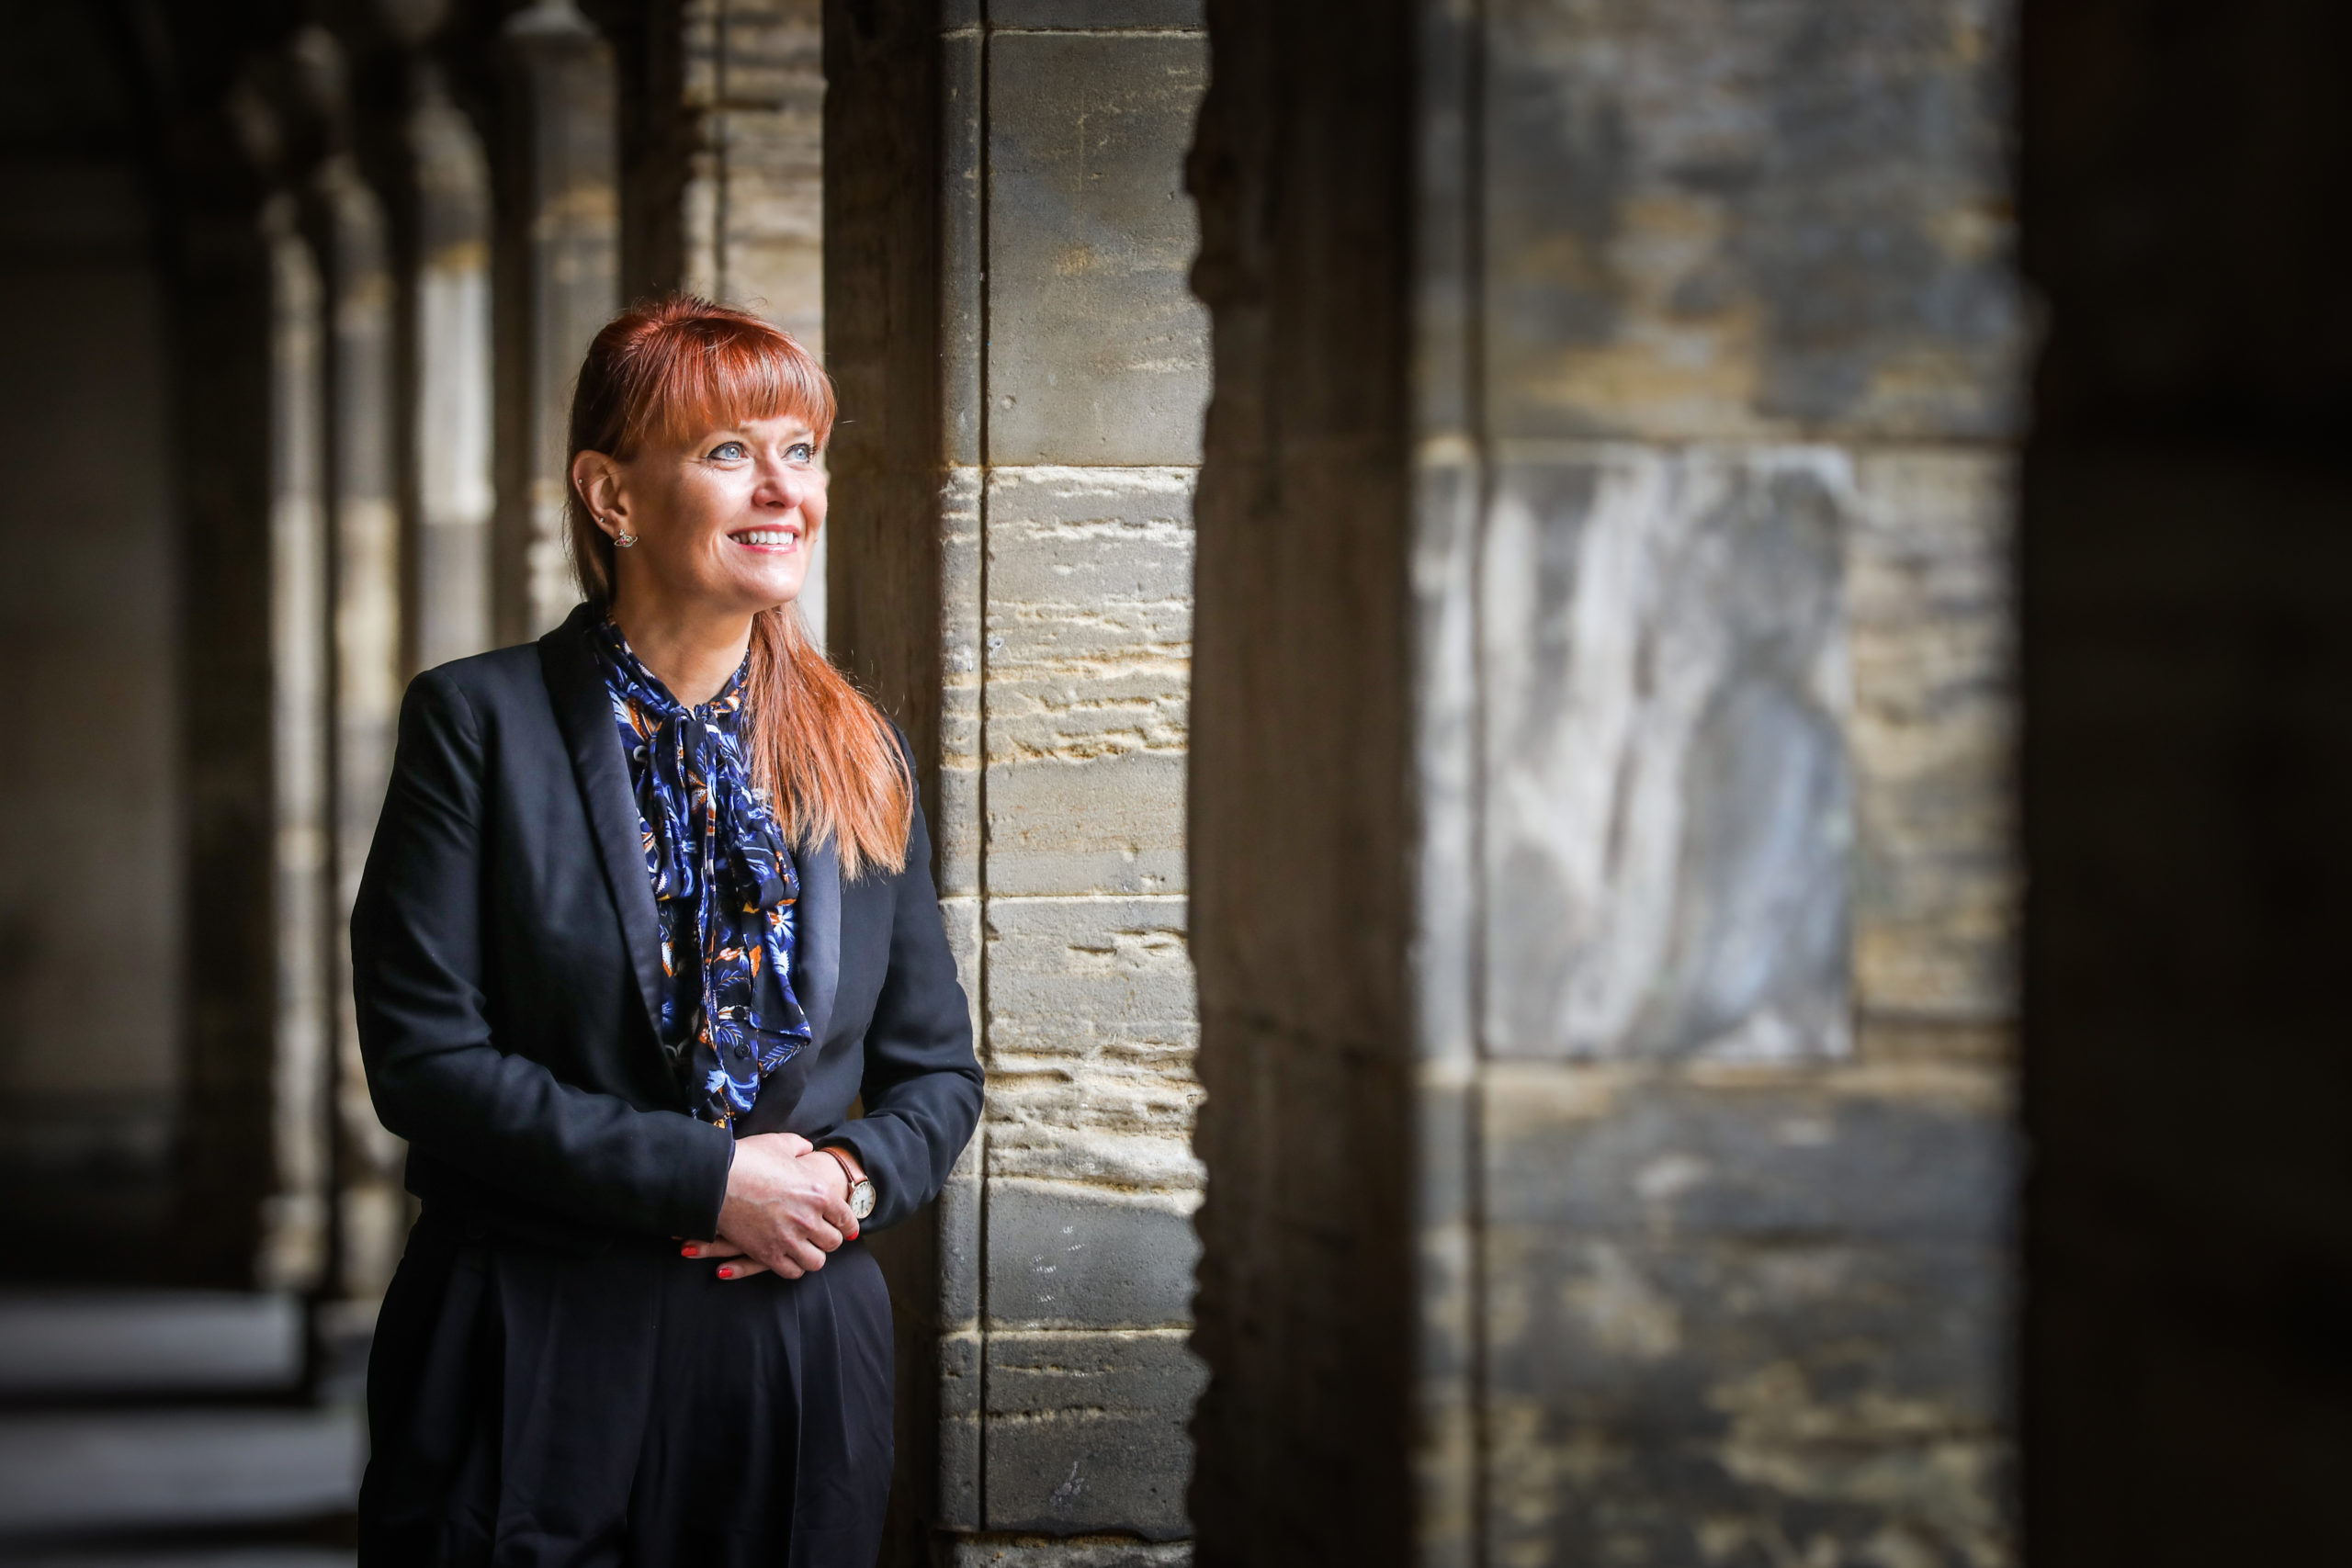 New rector Avril McNeill will lead Madras College from historic to the modern as it moves from its campus at South Street.